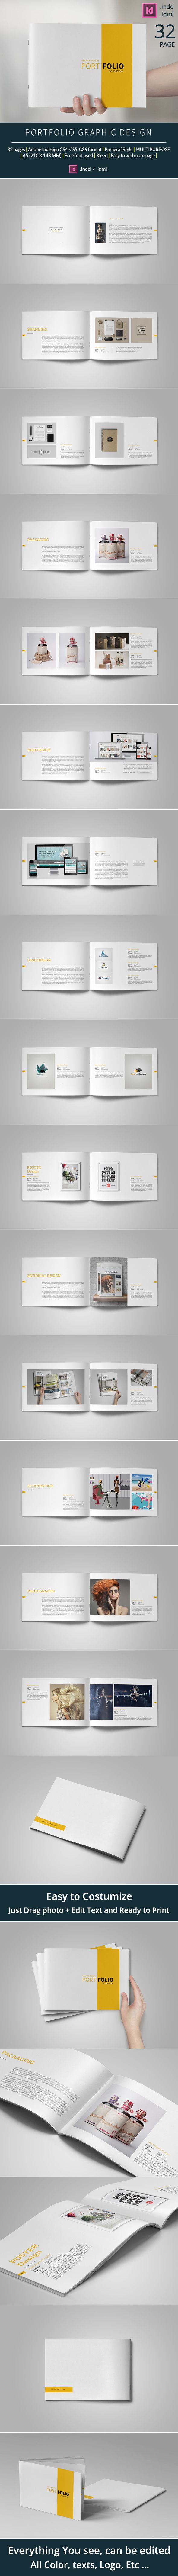 https://www.behance.net/gallery/24281663/Graphic-Design-Portfolio-Template                                                                                                                                                                                 Más